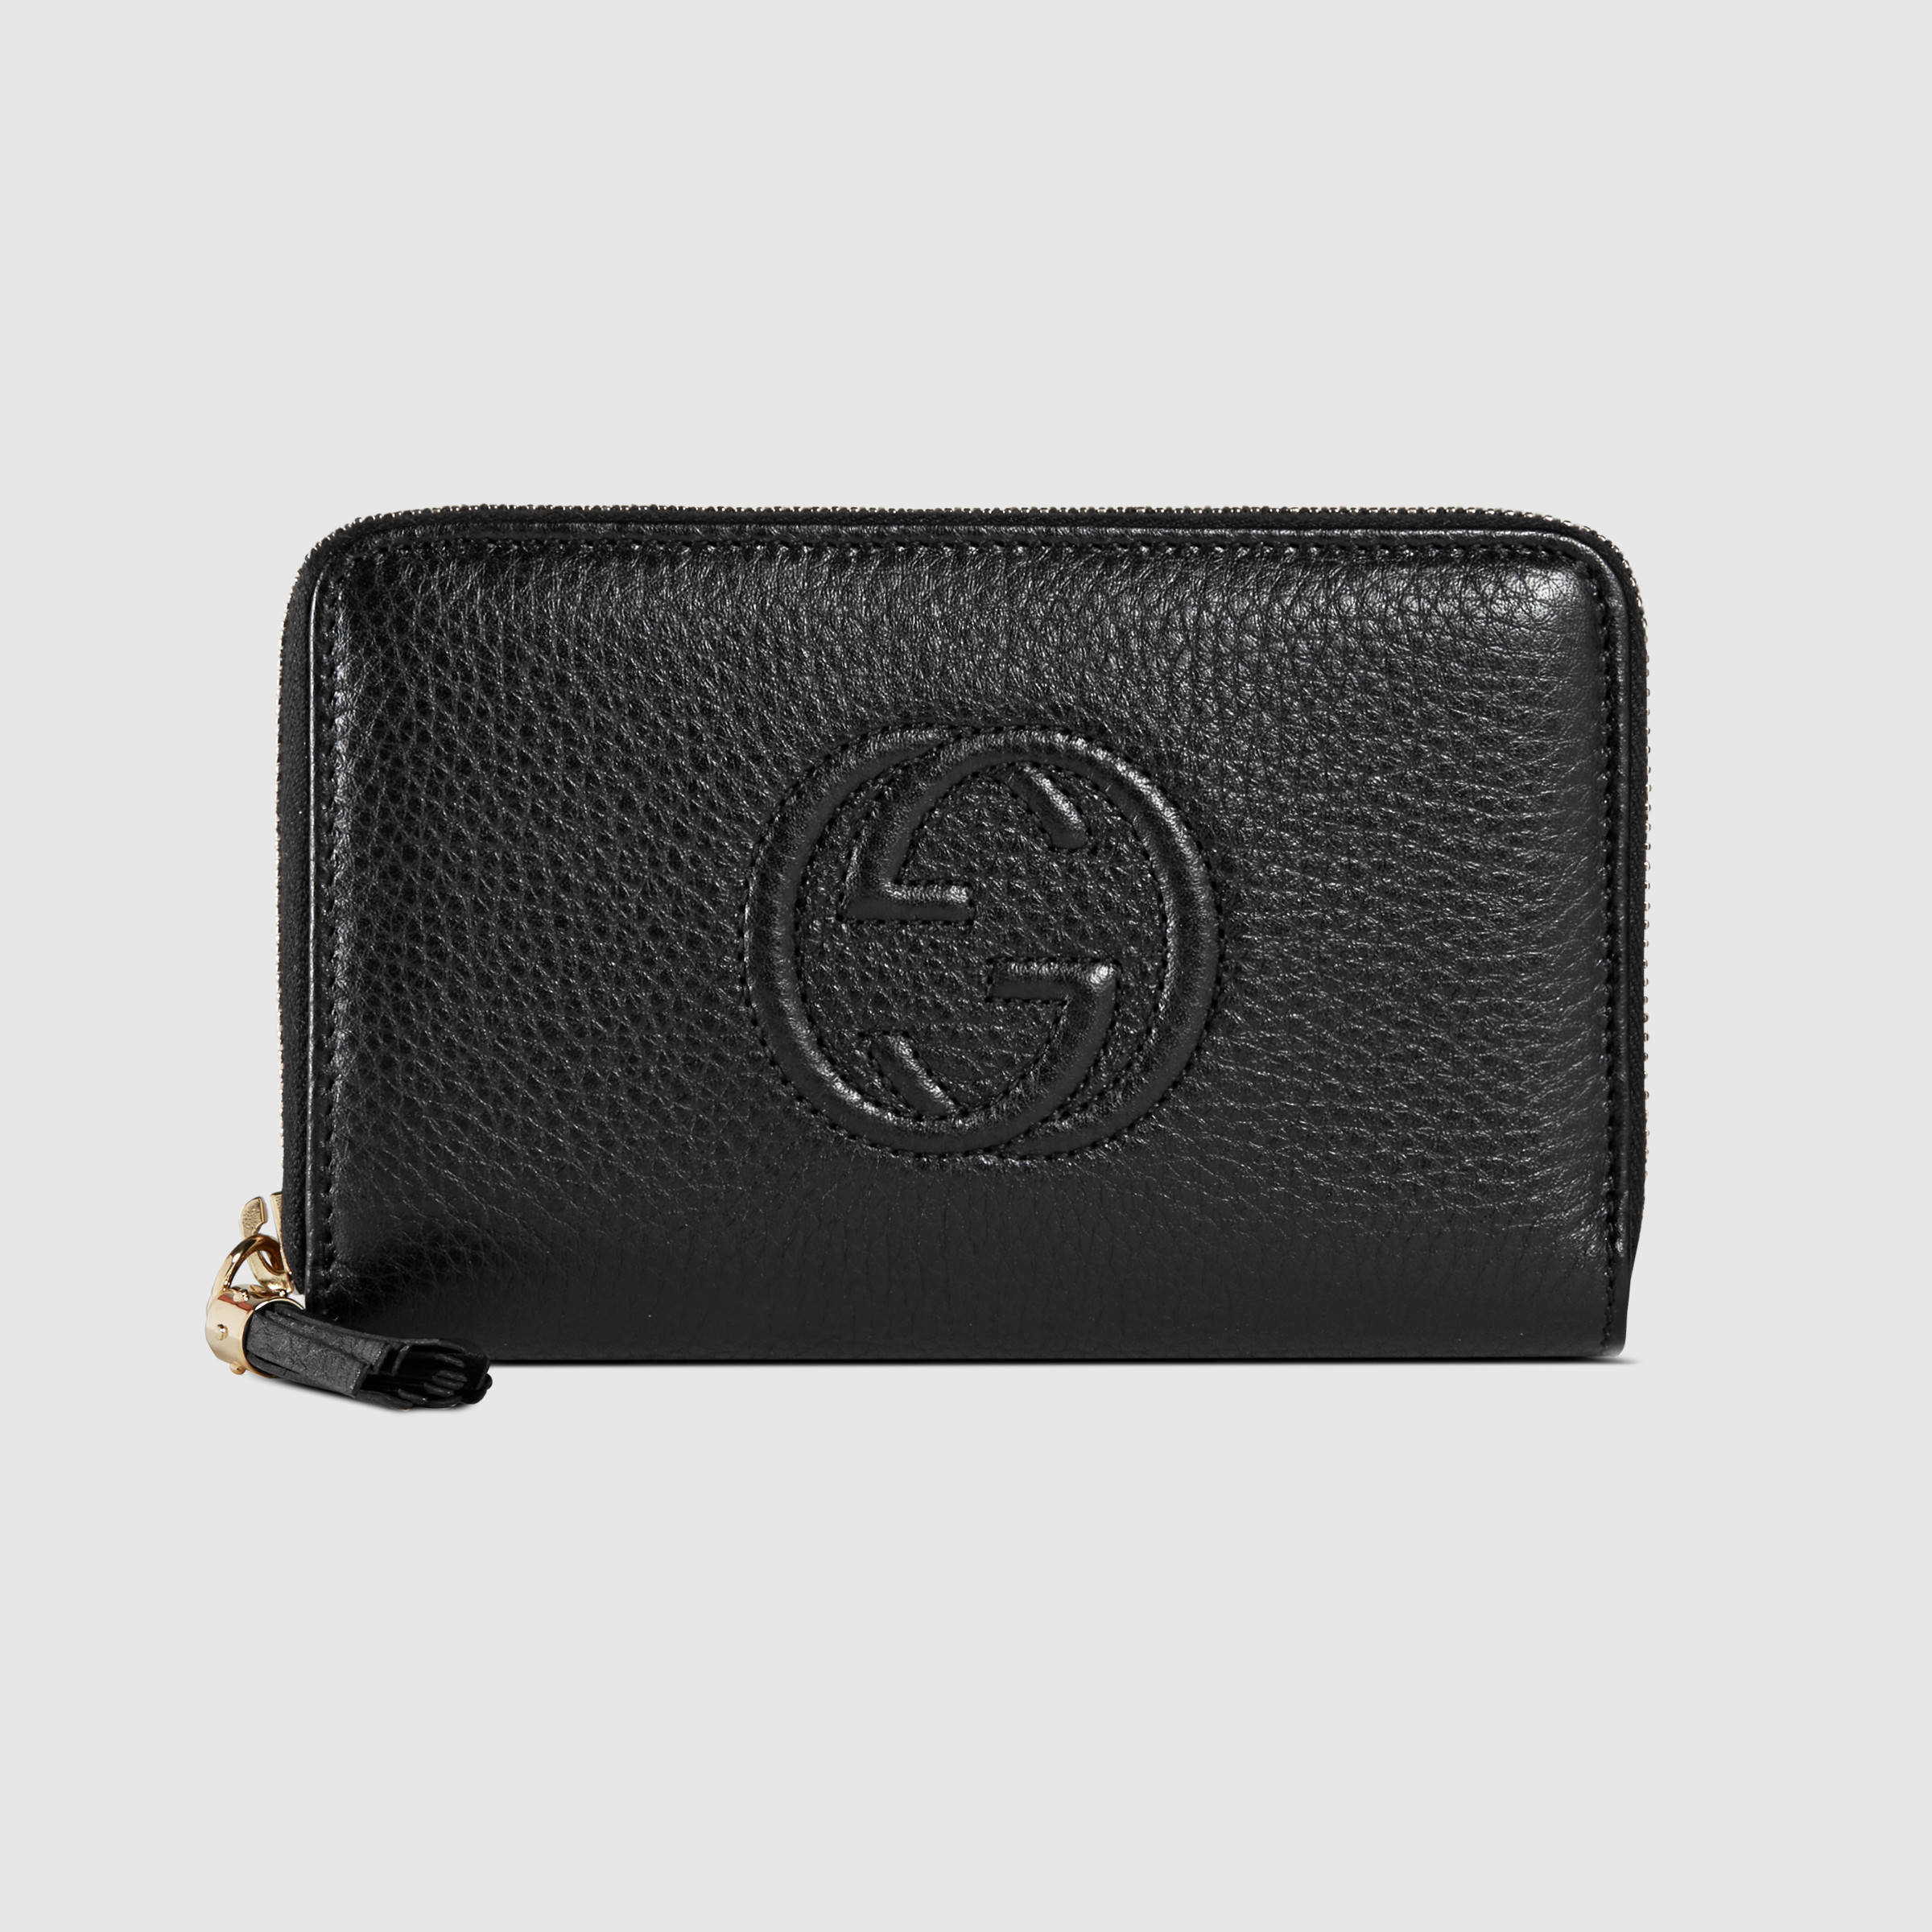 d60c007e7d0 Lyst - Gucci Soho Leather Zip Around Wallet in Black